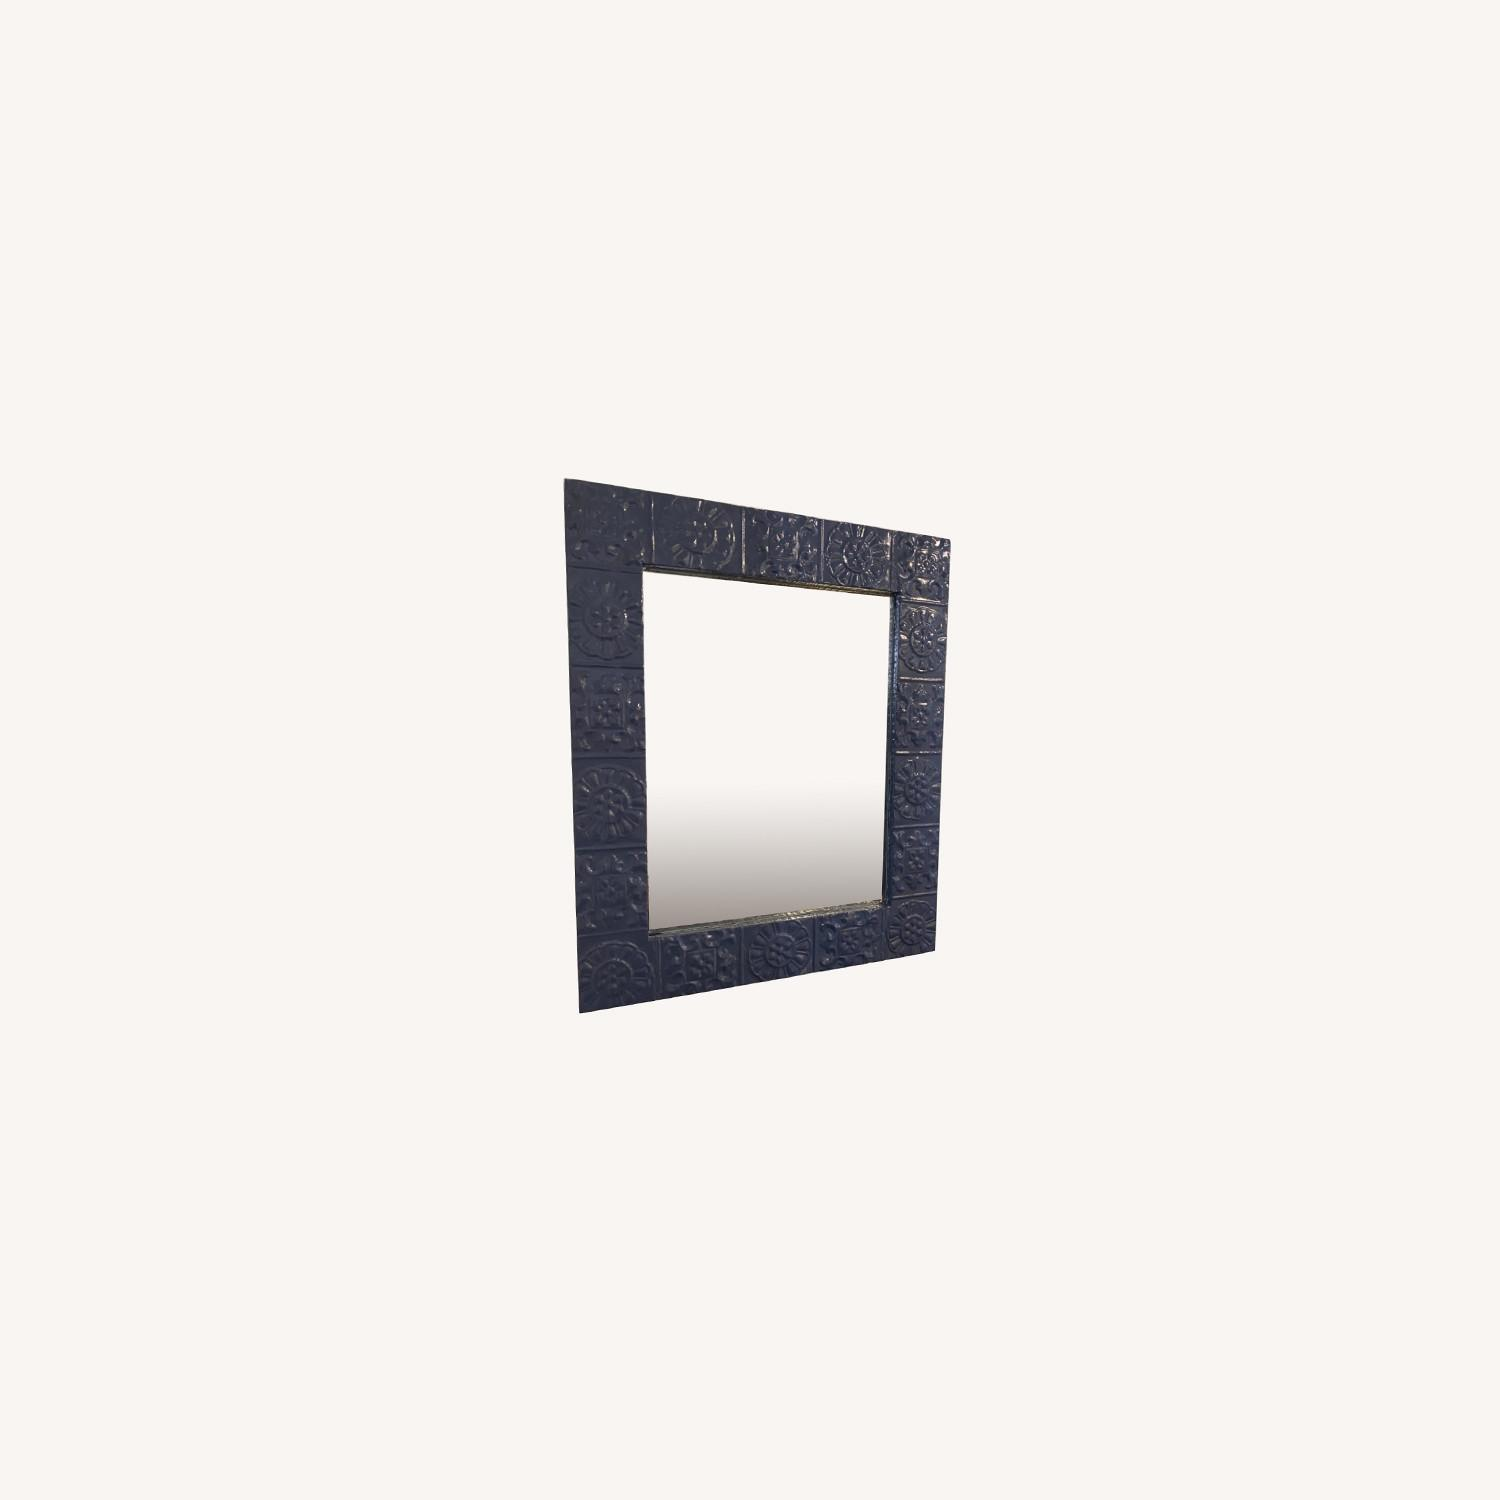 Pair of Large Mirrors - image-0